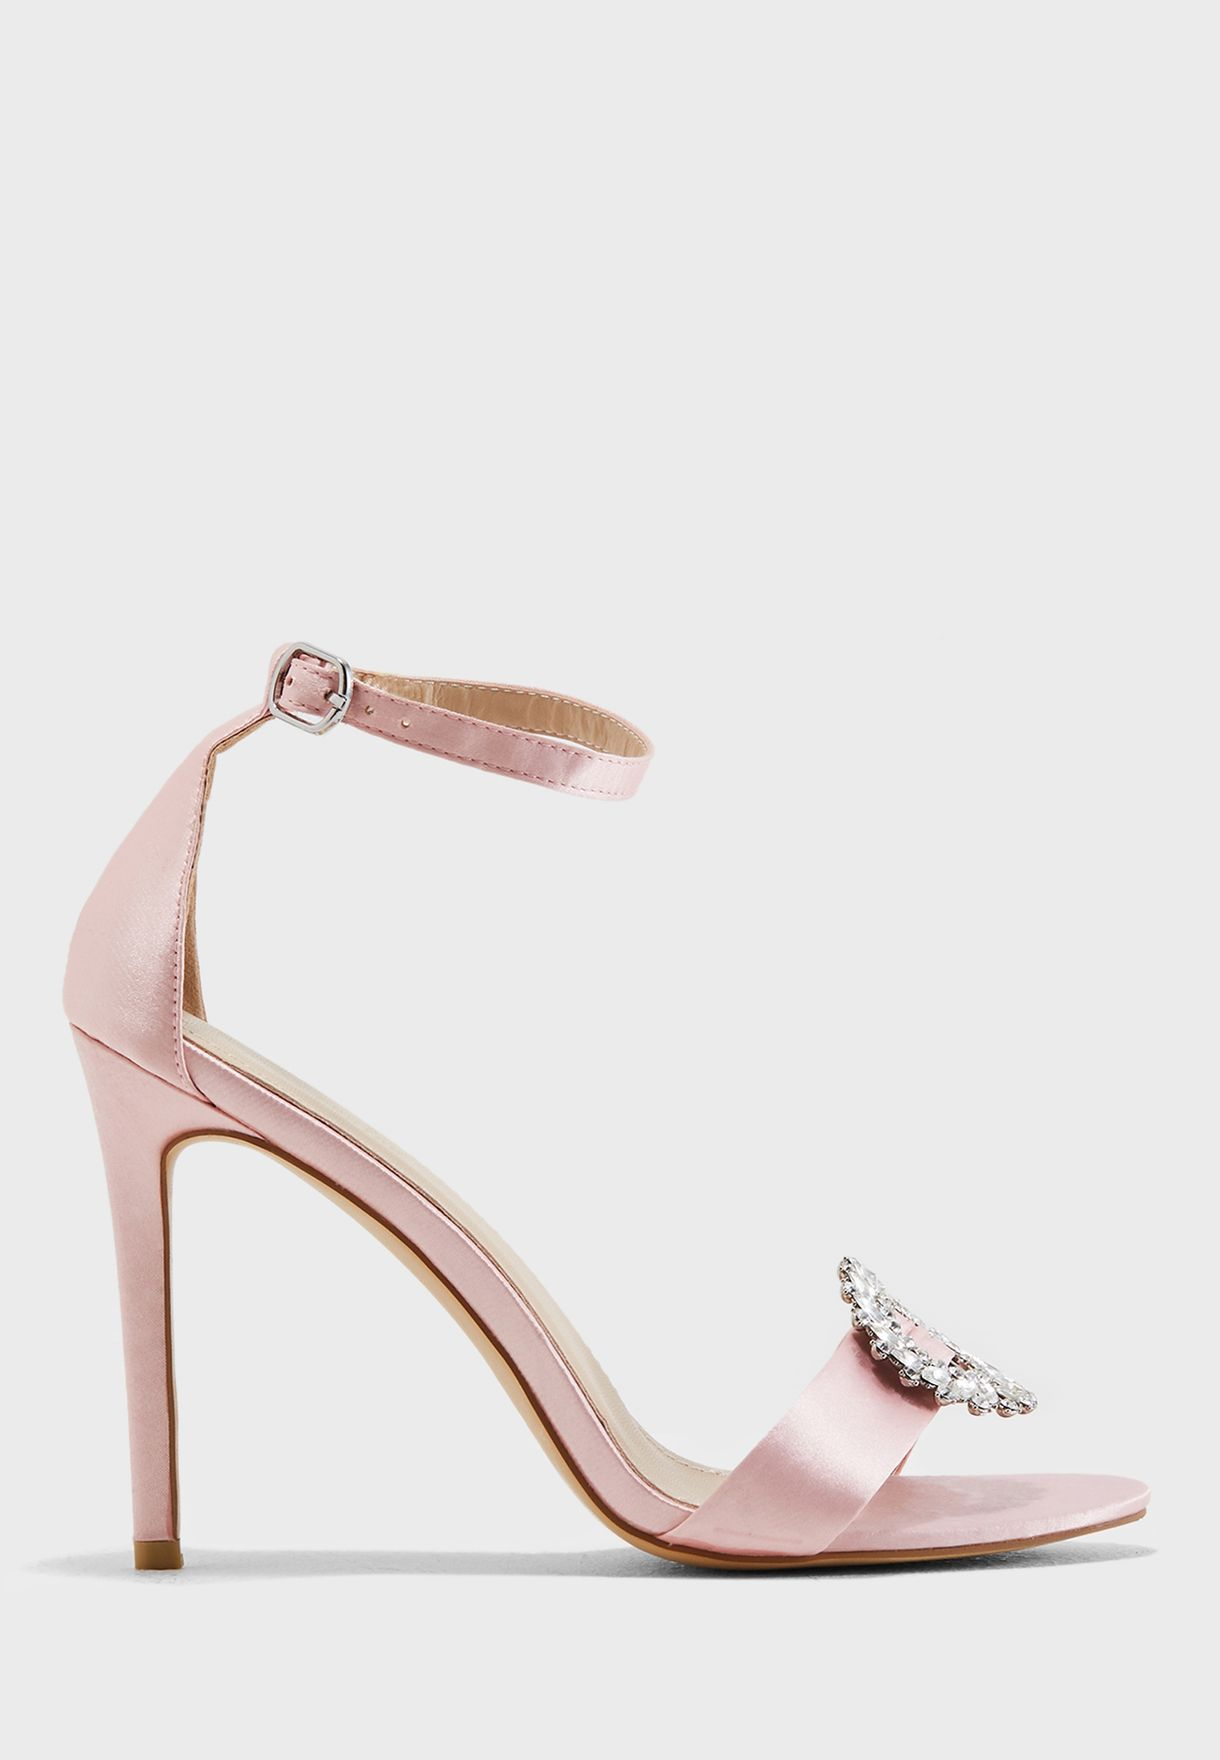 488b0d7cde0 Shop Public Desire pink Halle Silver Brooch Barely There Heel HALLE ...